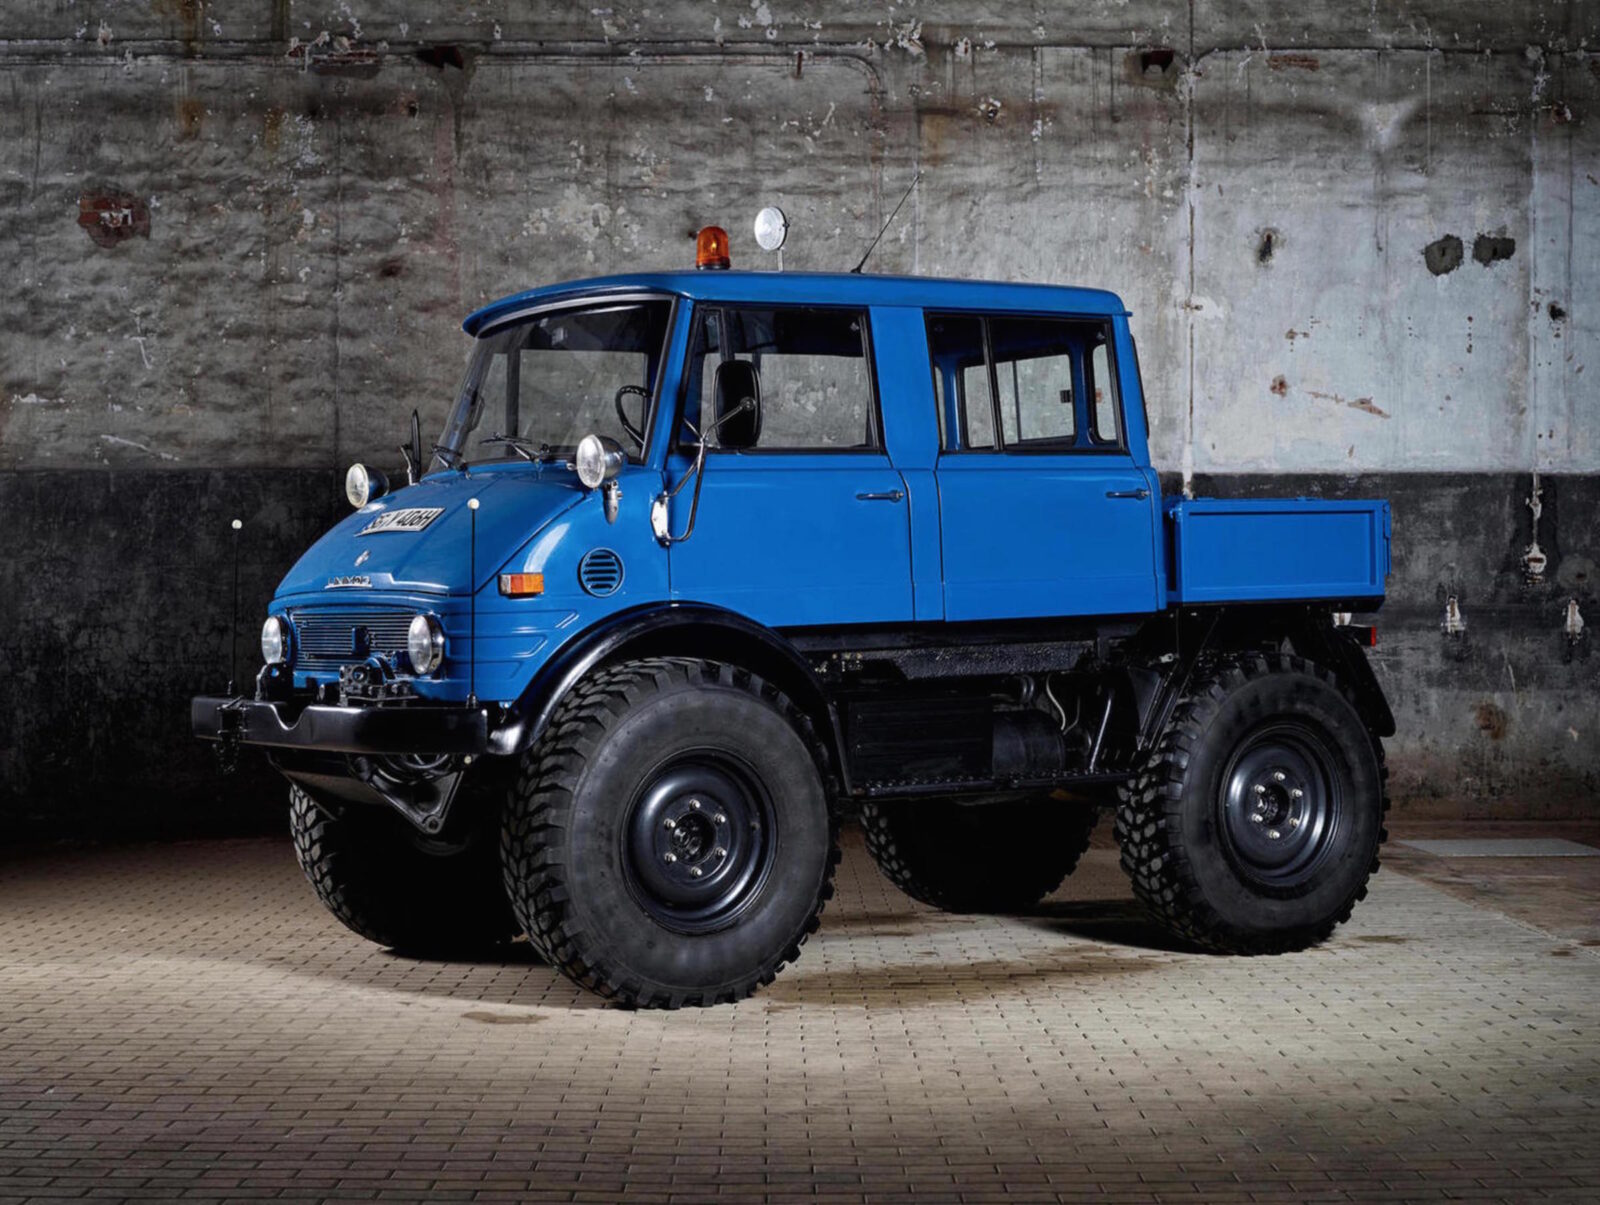 Military Vehicles For Sale >> Mercedes-Benz Unimog 406